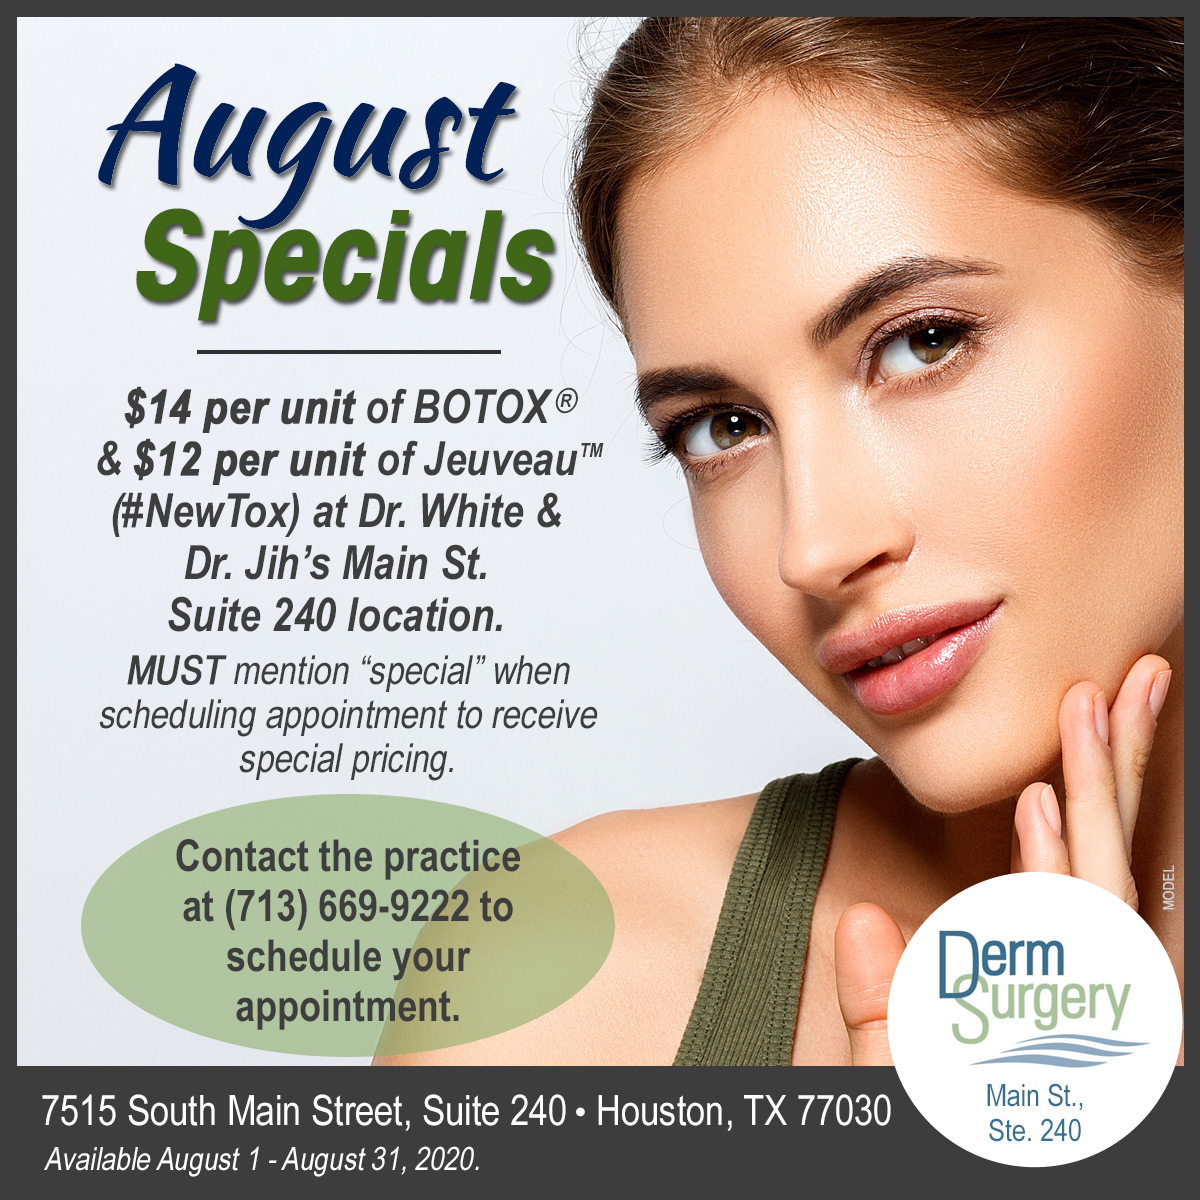 Dr. White & Dr. Jih's August Special